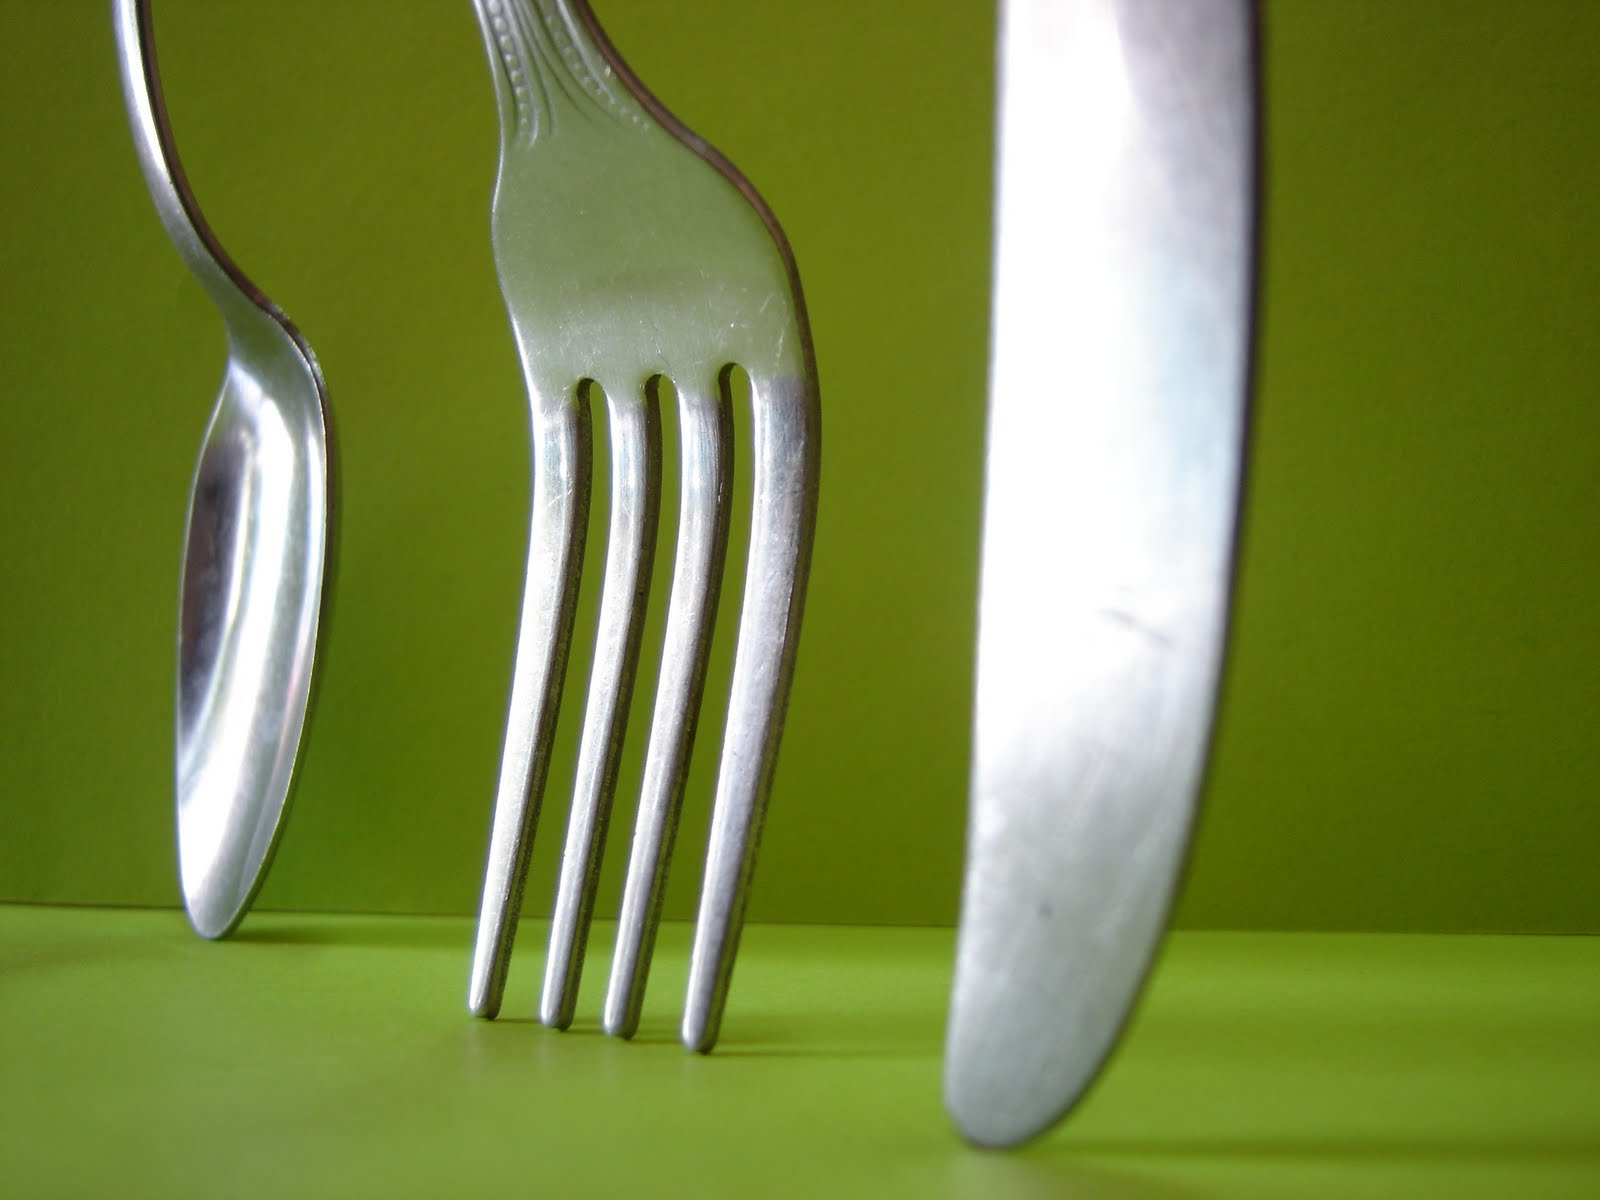 Eating-Utensils